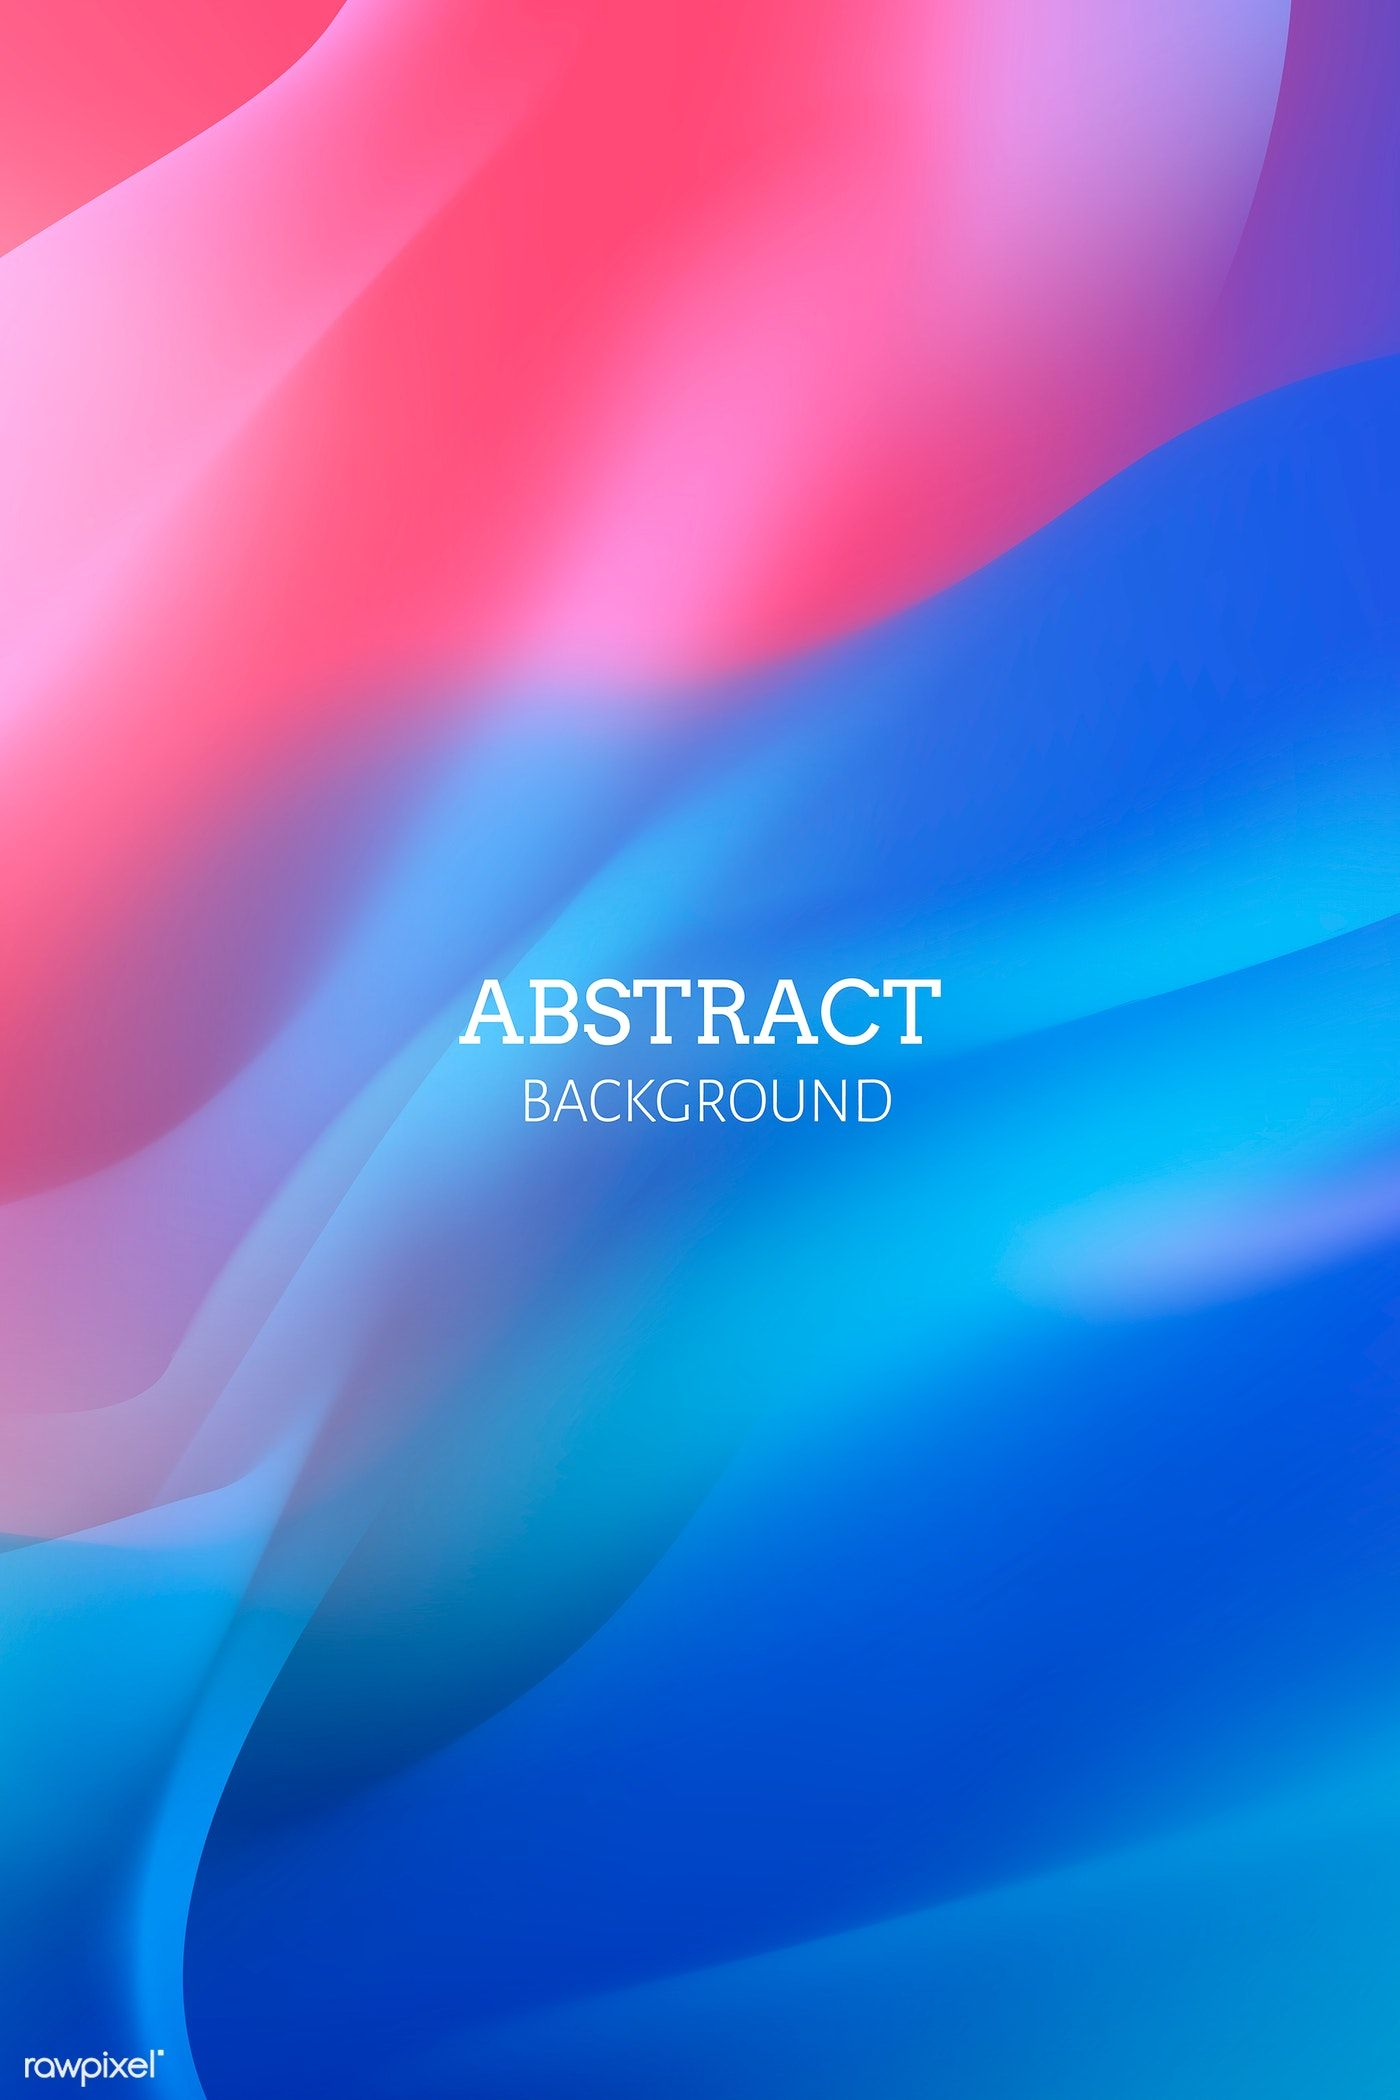 Vibrant Red Abstract Background Vector Free Image By Rawpixel